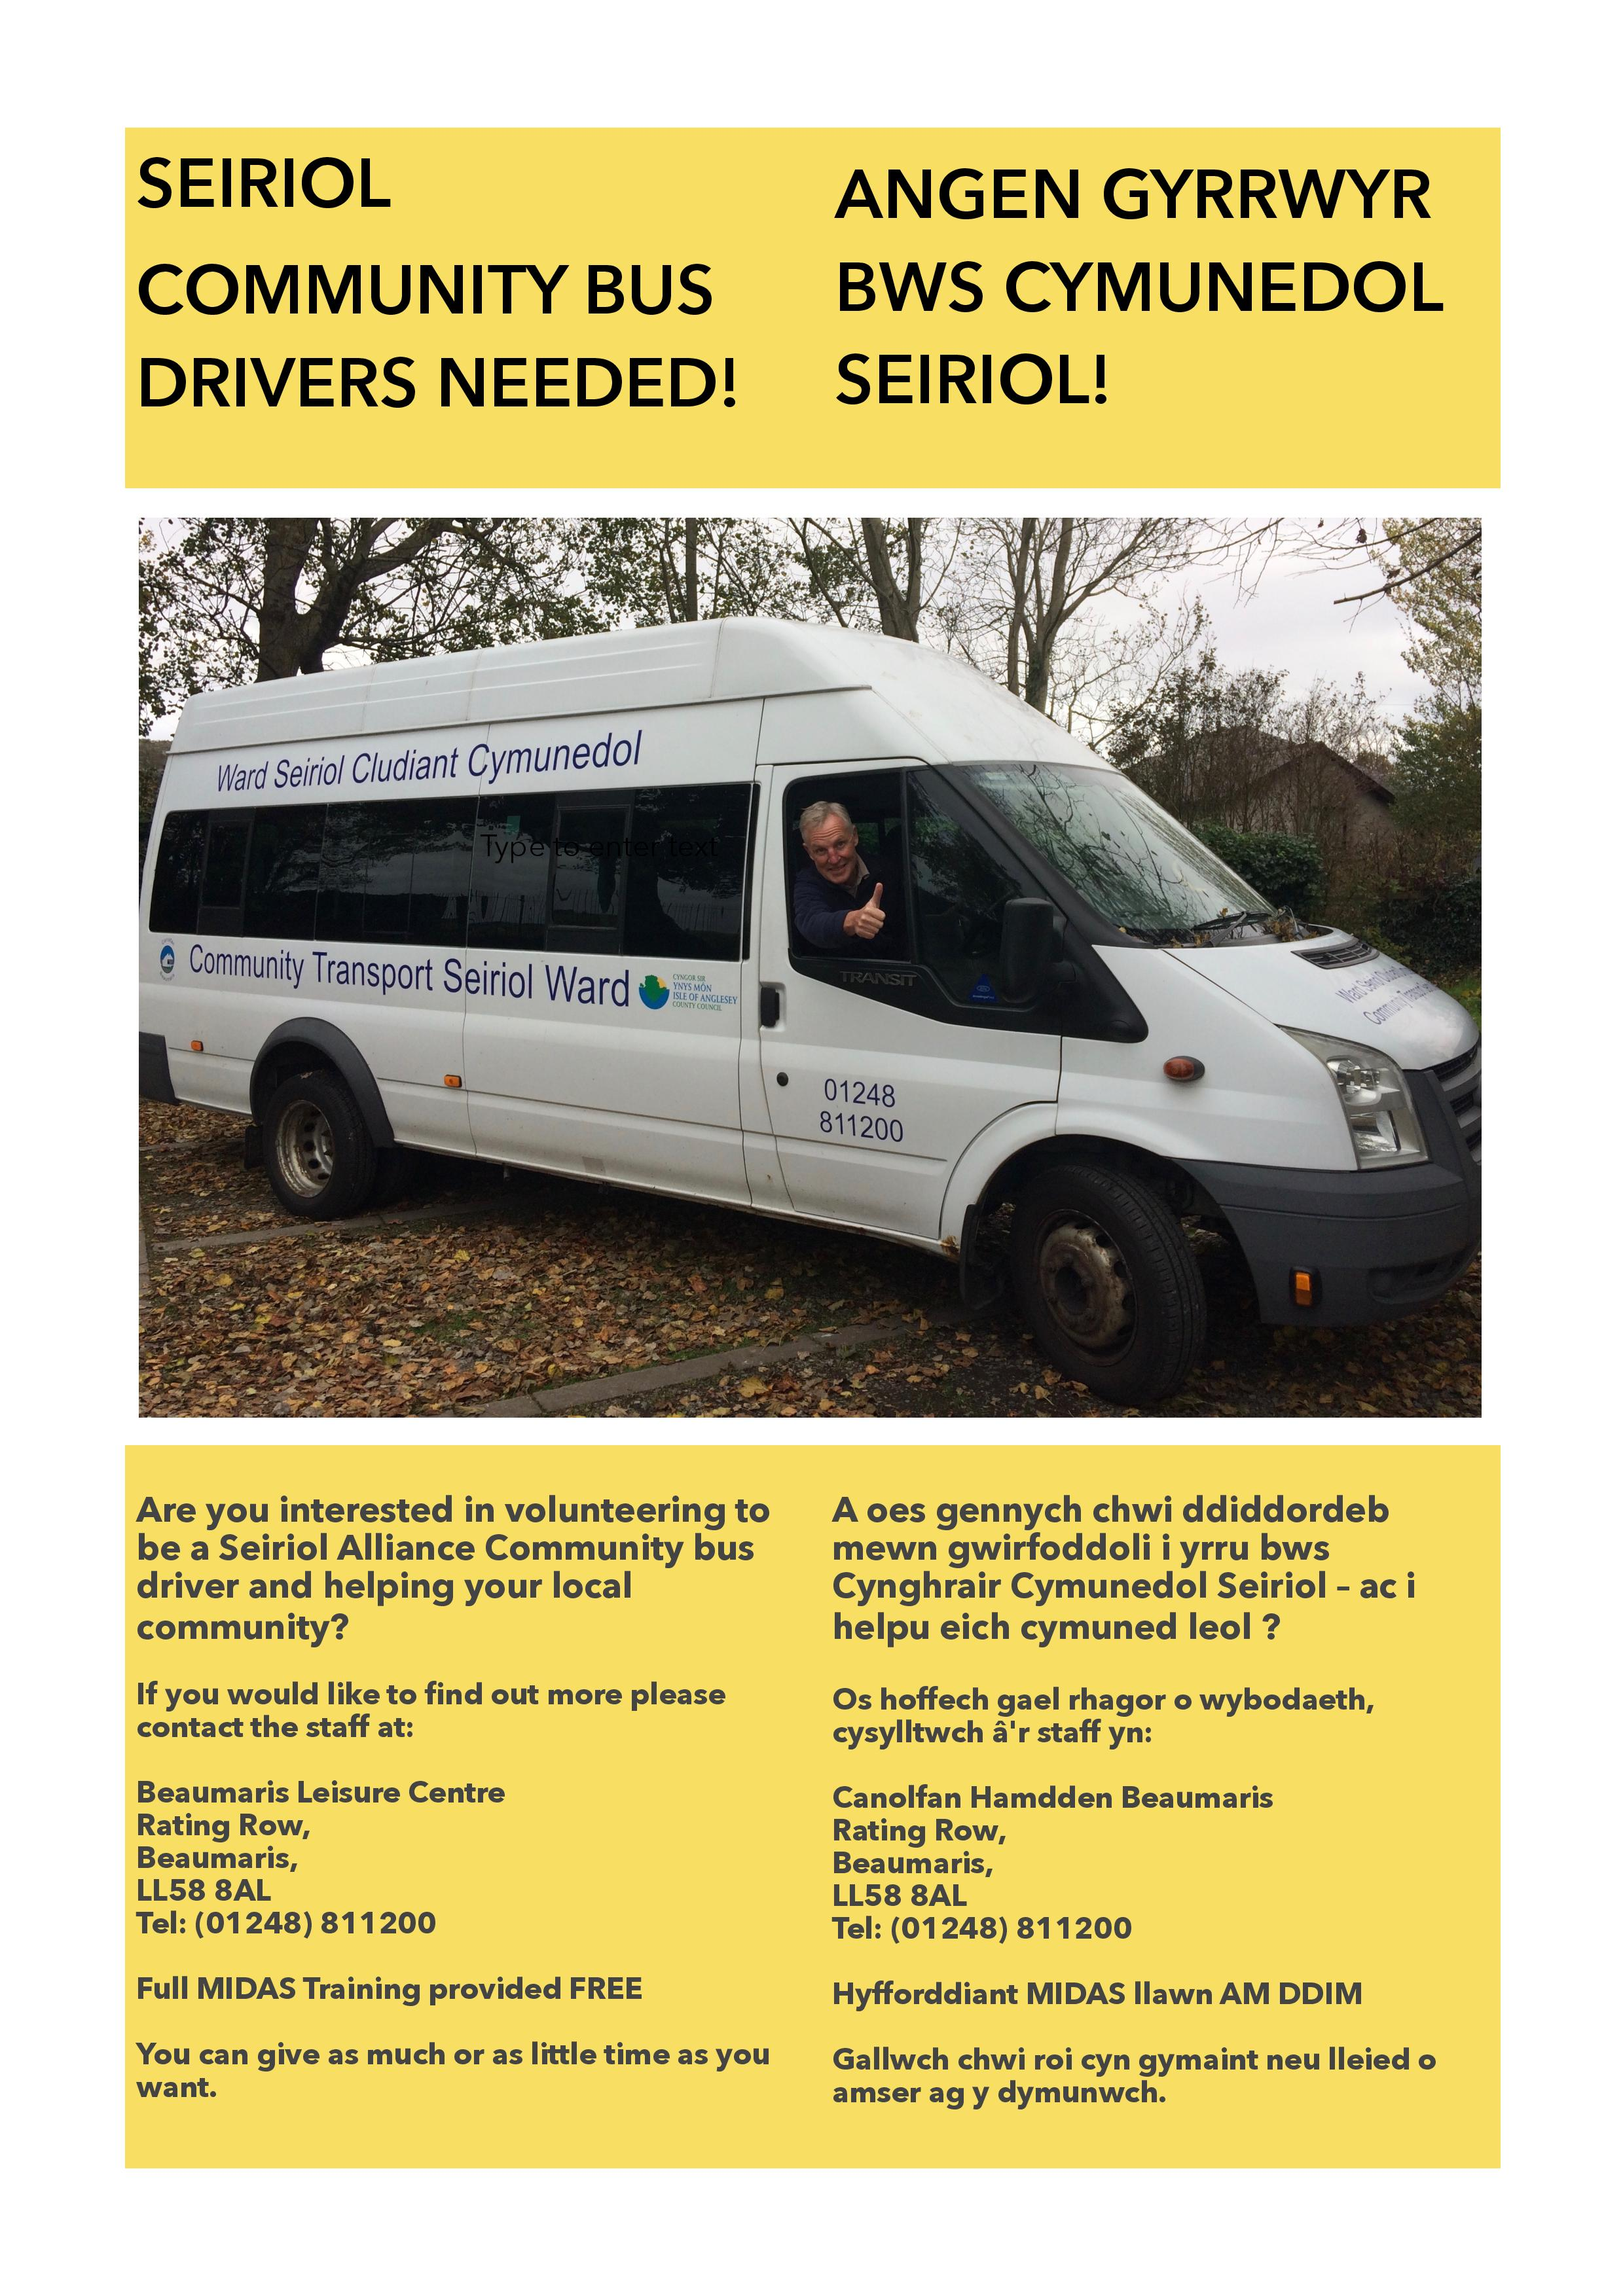 Seiriol Community Bus Drivers Needed!